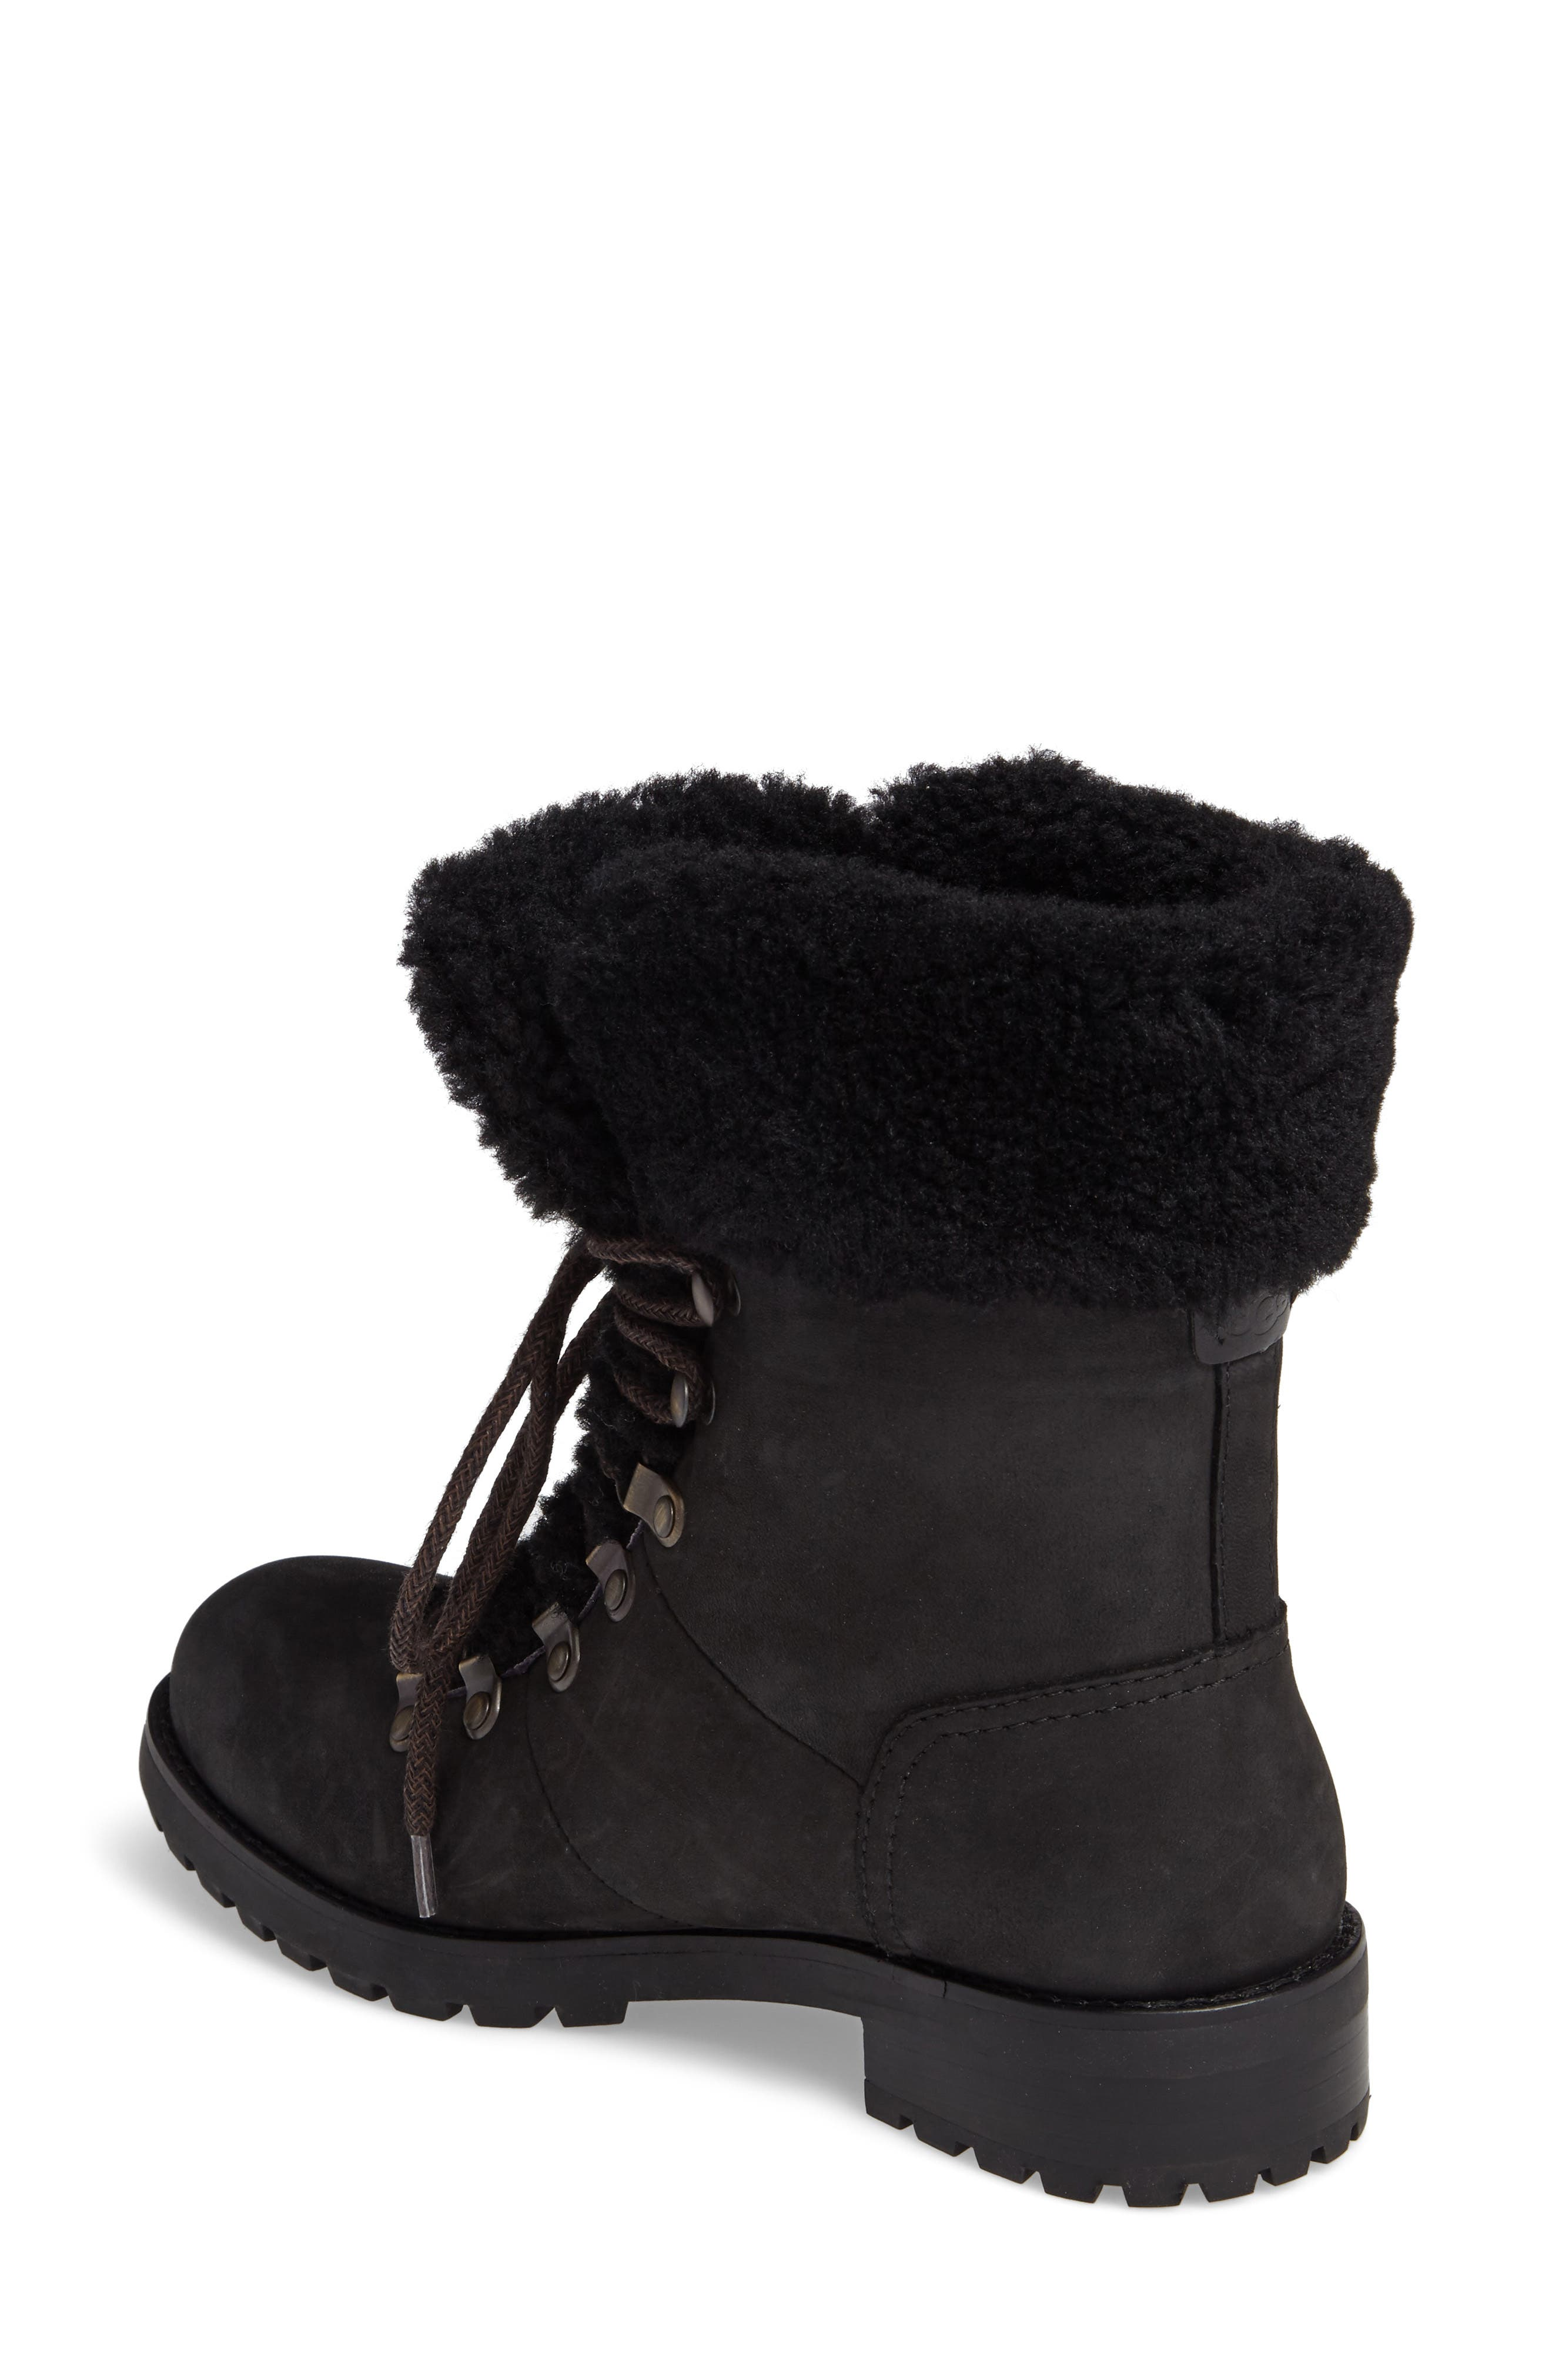 Fraser Genuine Shearling Water Resistant Boot,                             Alternate thumbnail 2, color,                             Black Leather